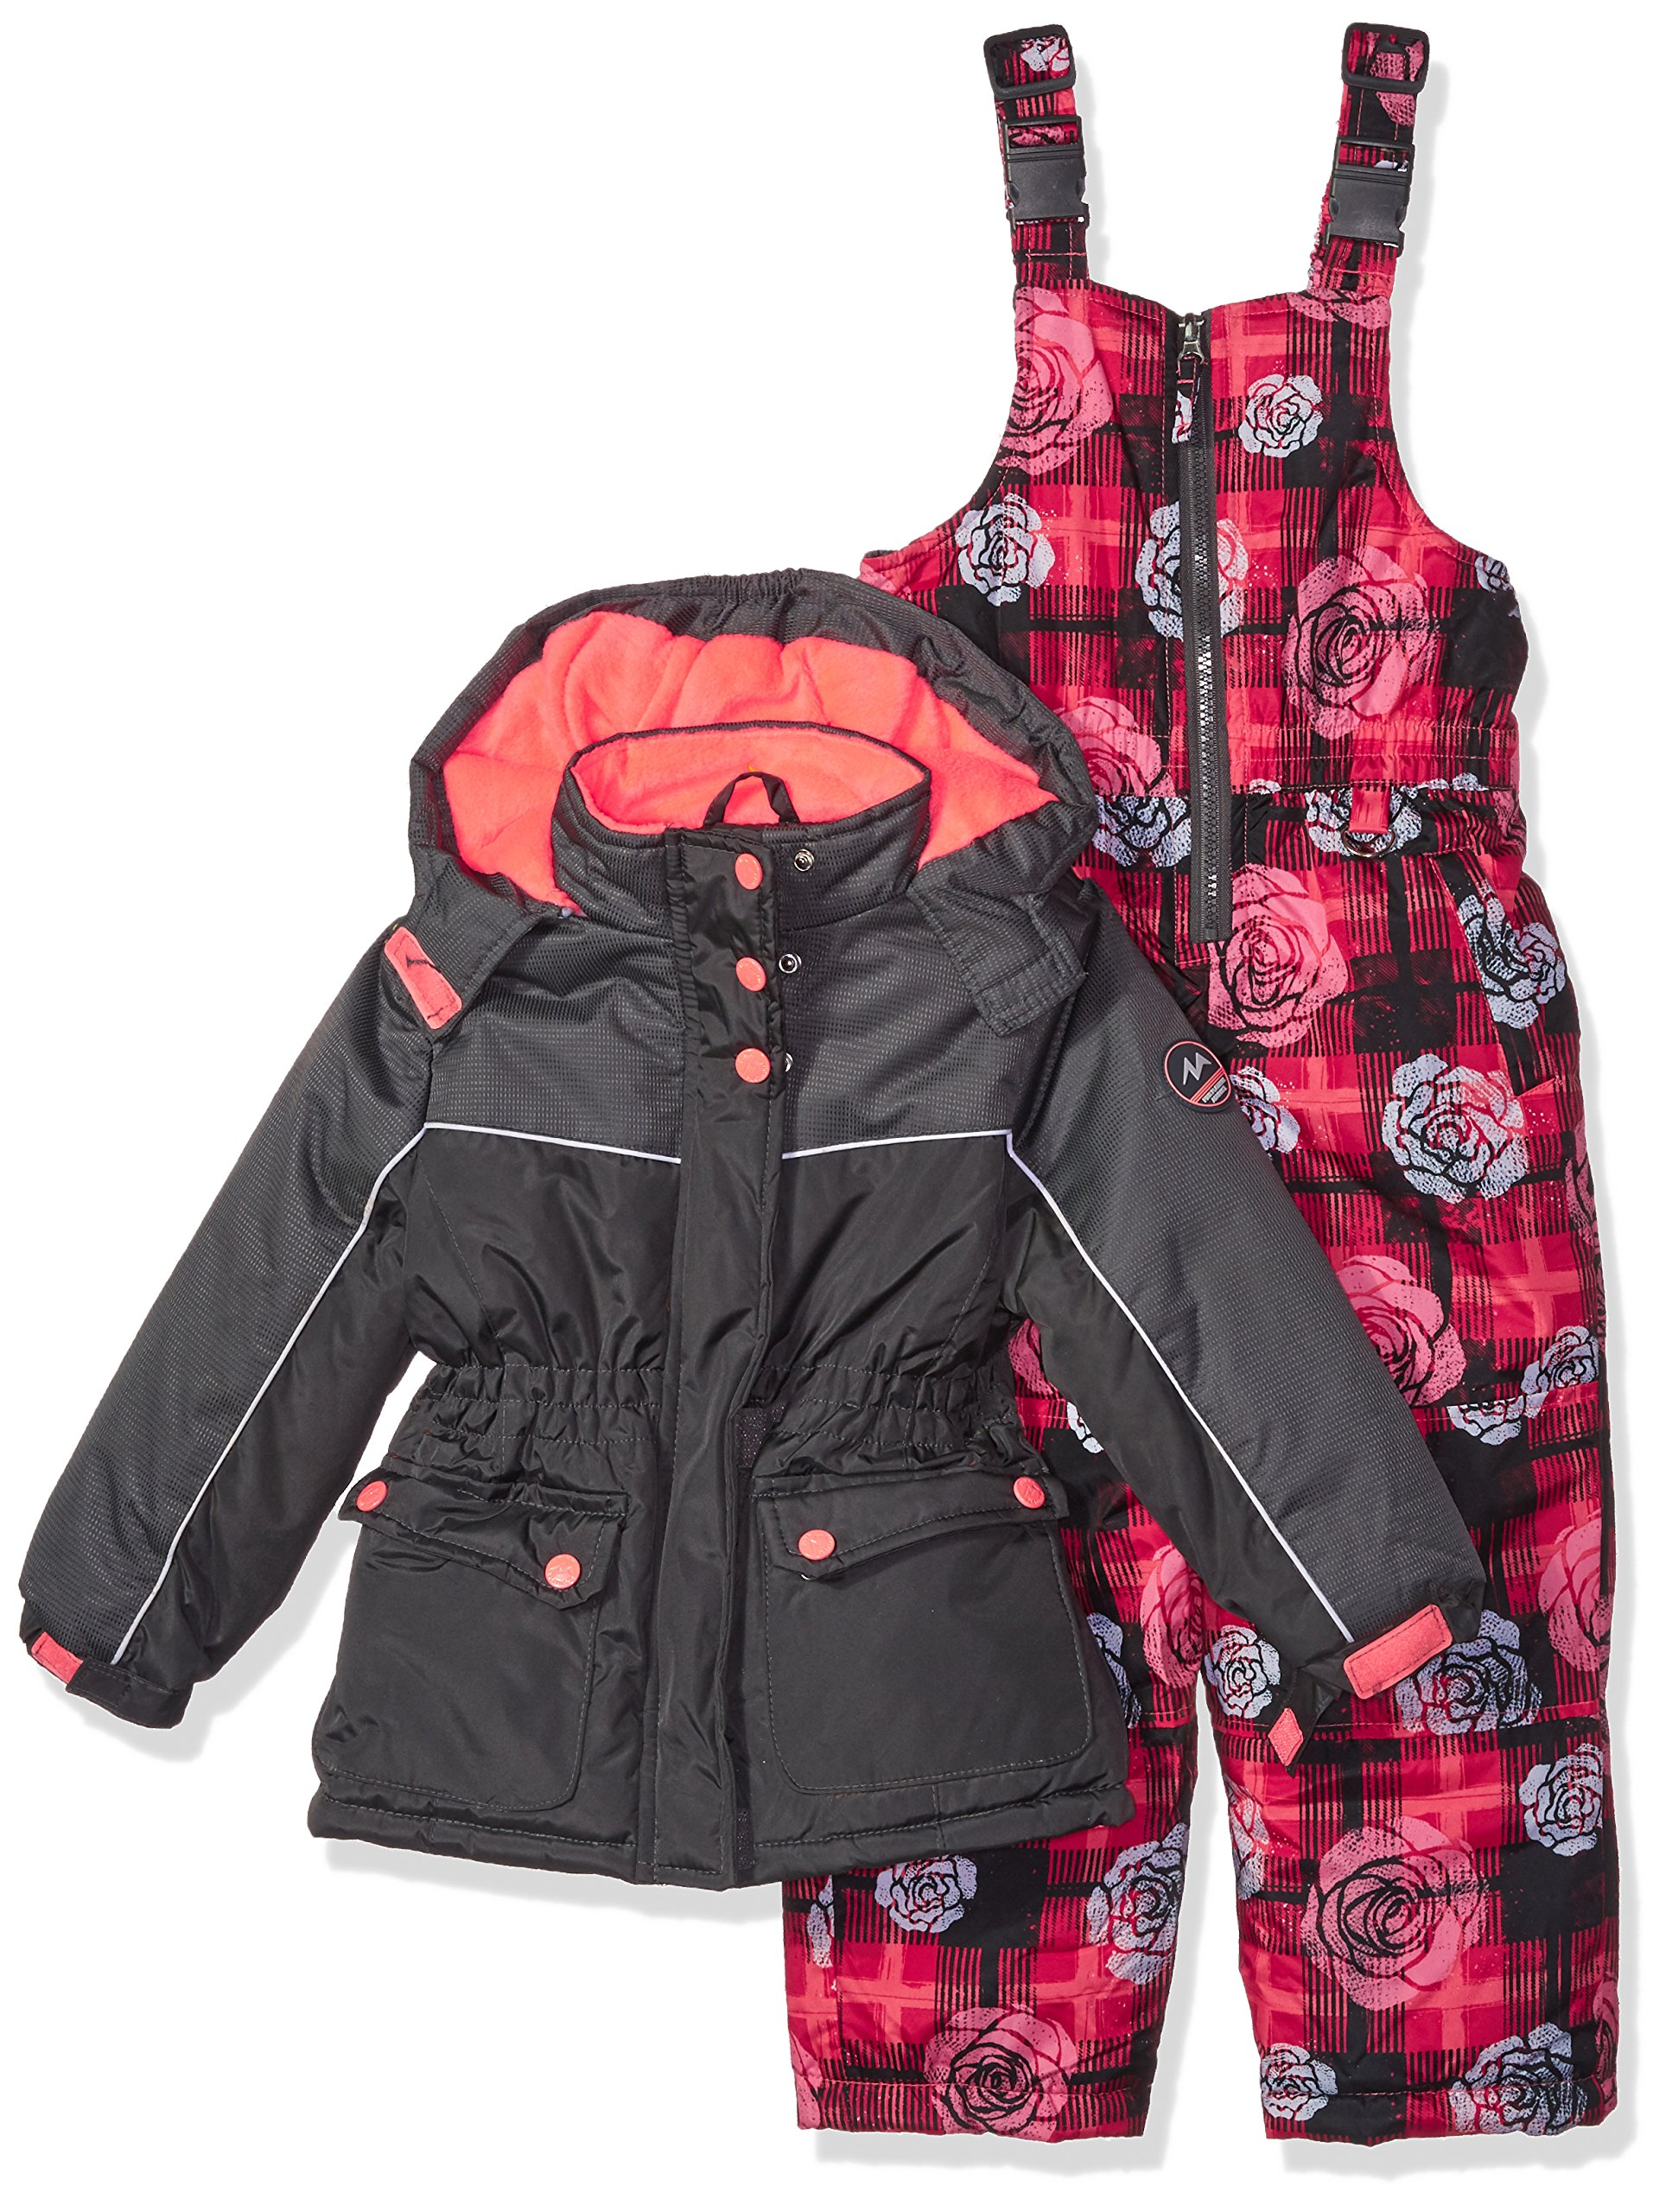 Pink Platinum Little Girls' Insulated Two-Piece Better Snowsuit, Charcoal, 6X by Pink Platinum